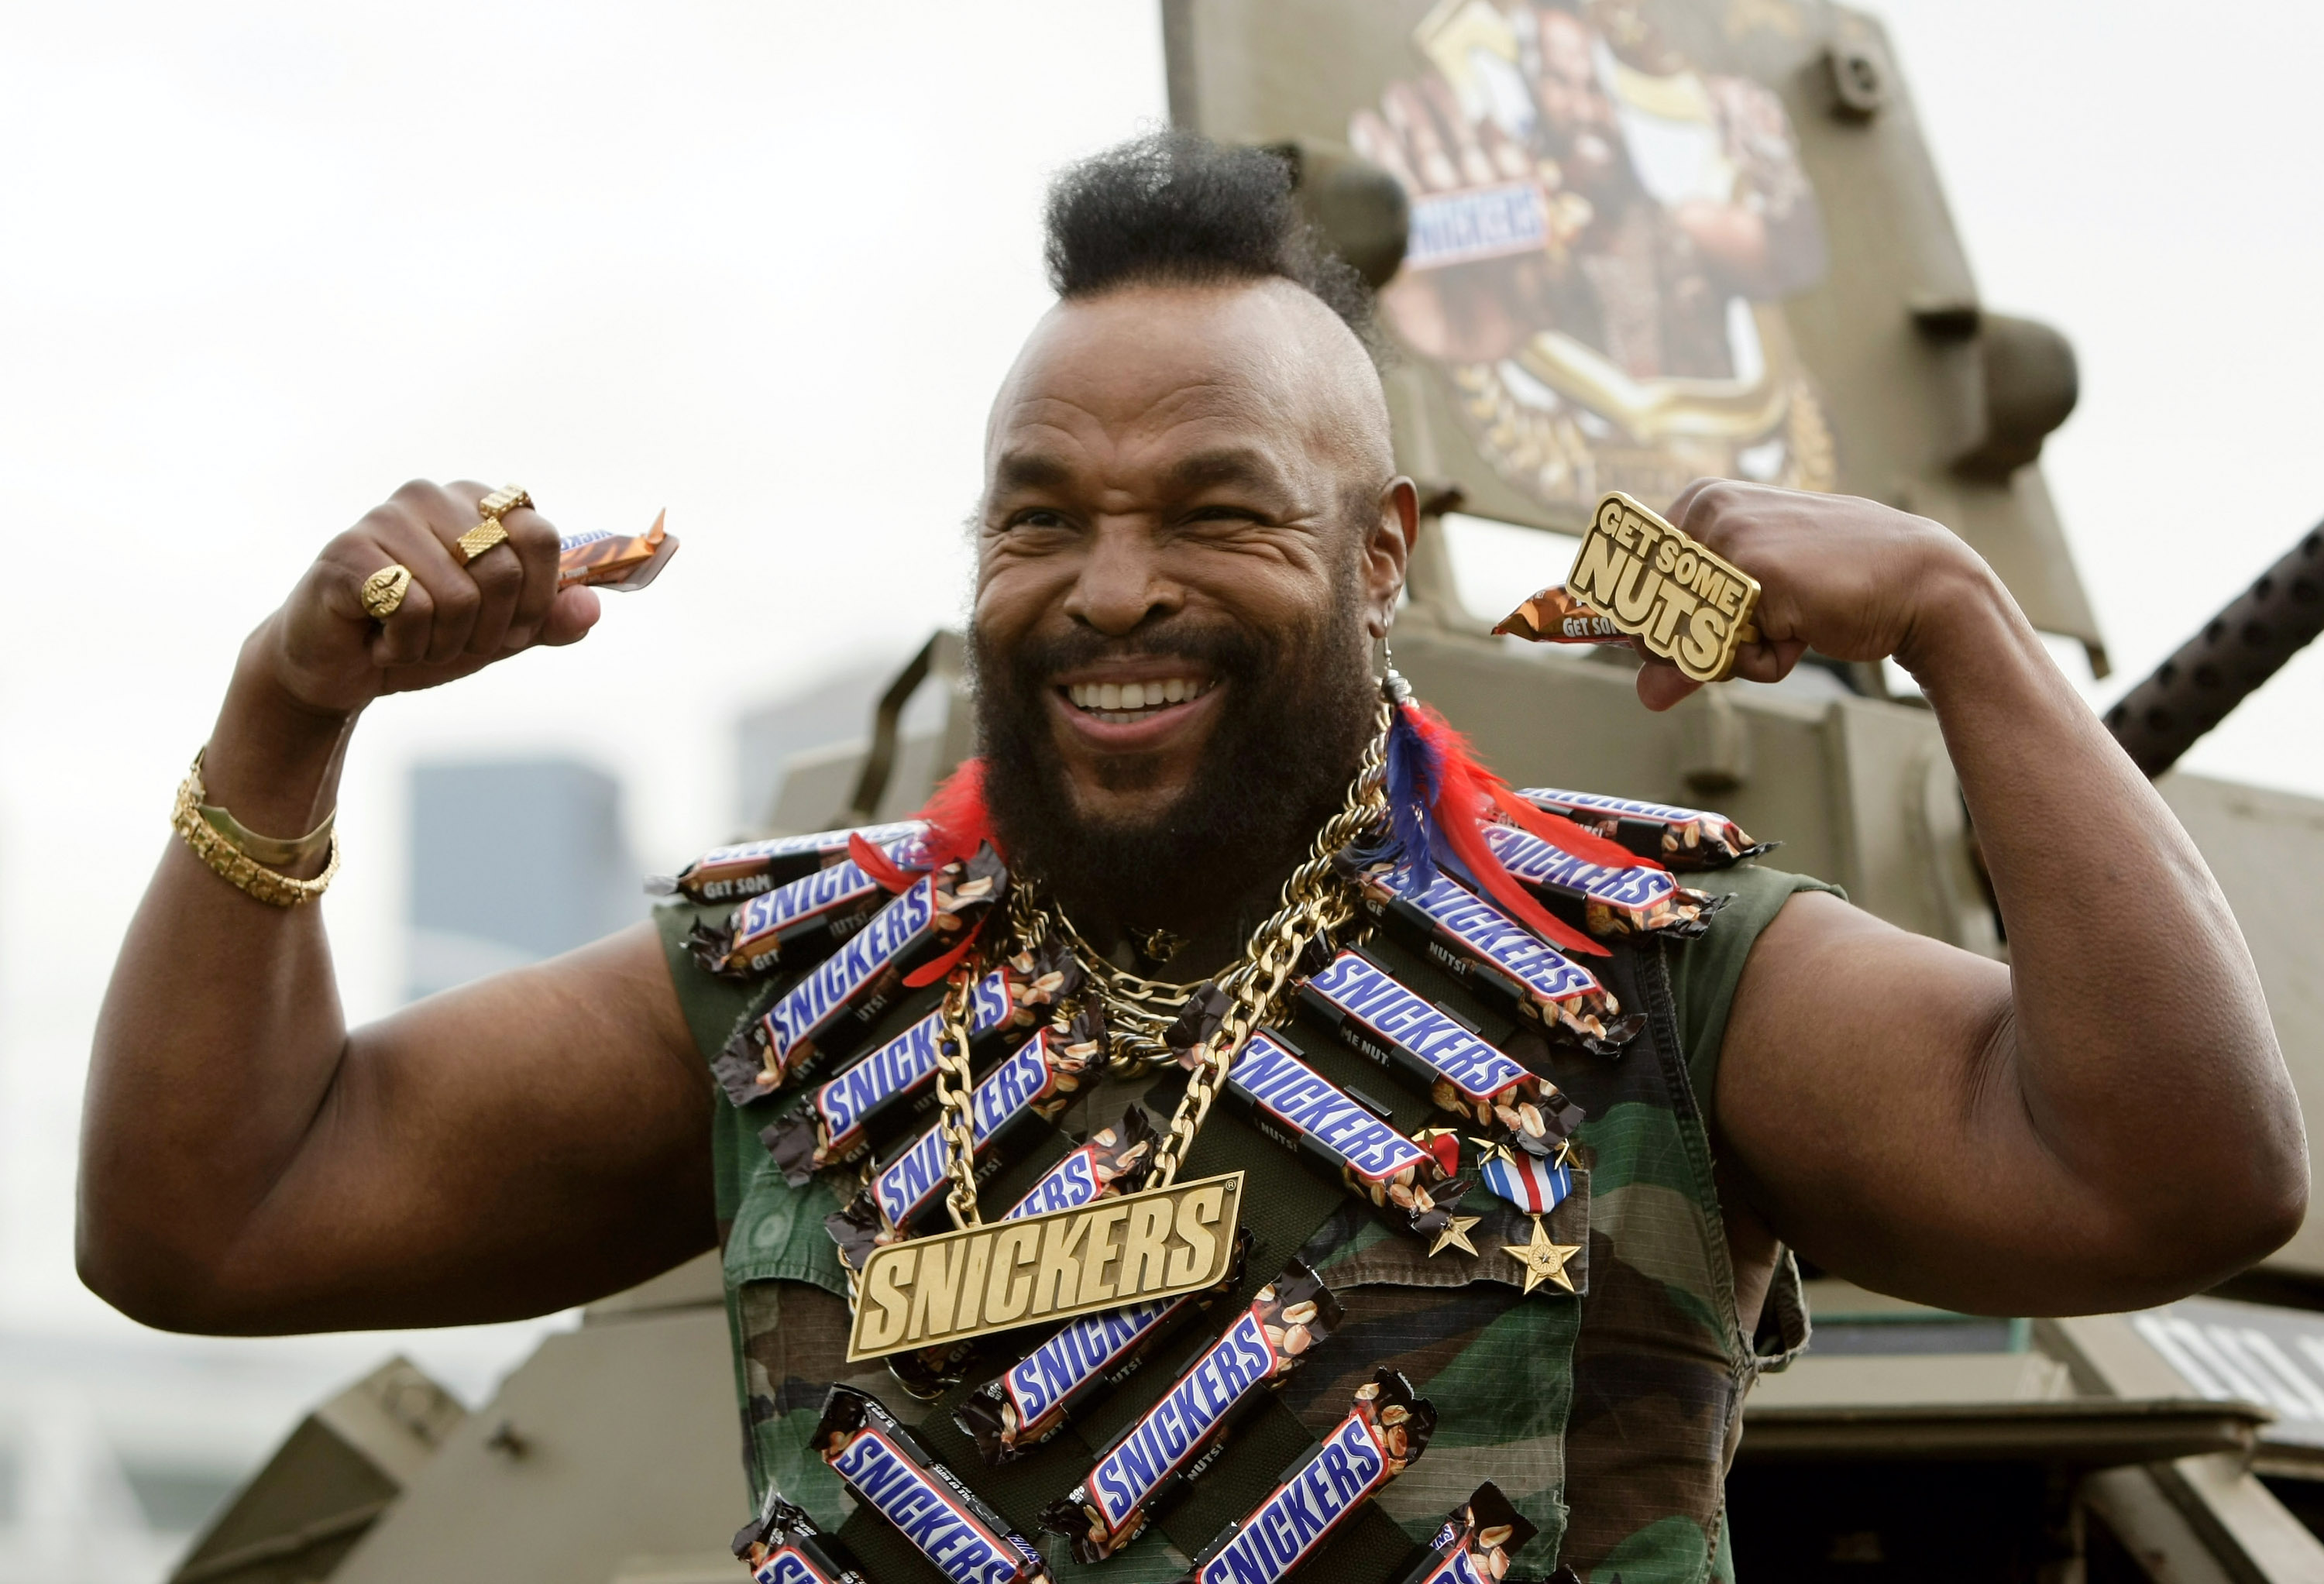 Mr. T Getty Images/Robert Cianflon